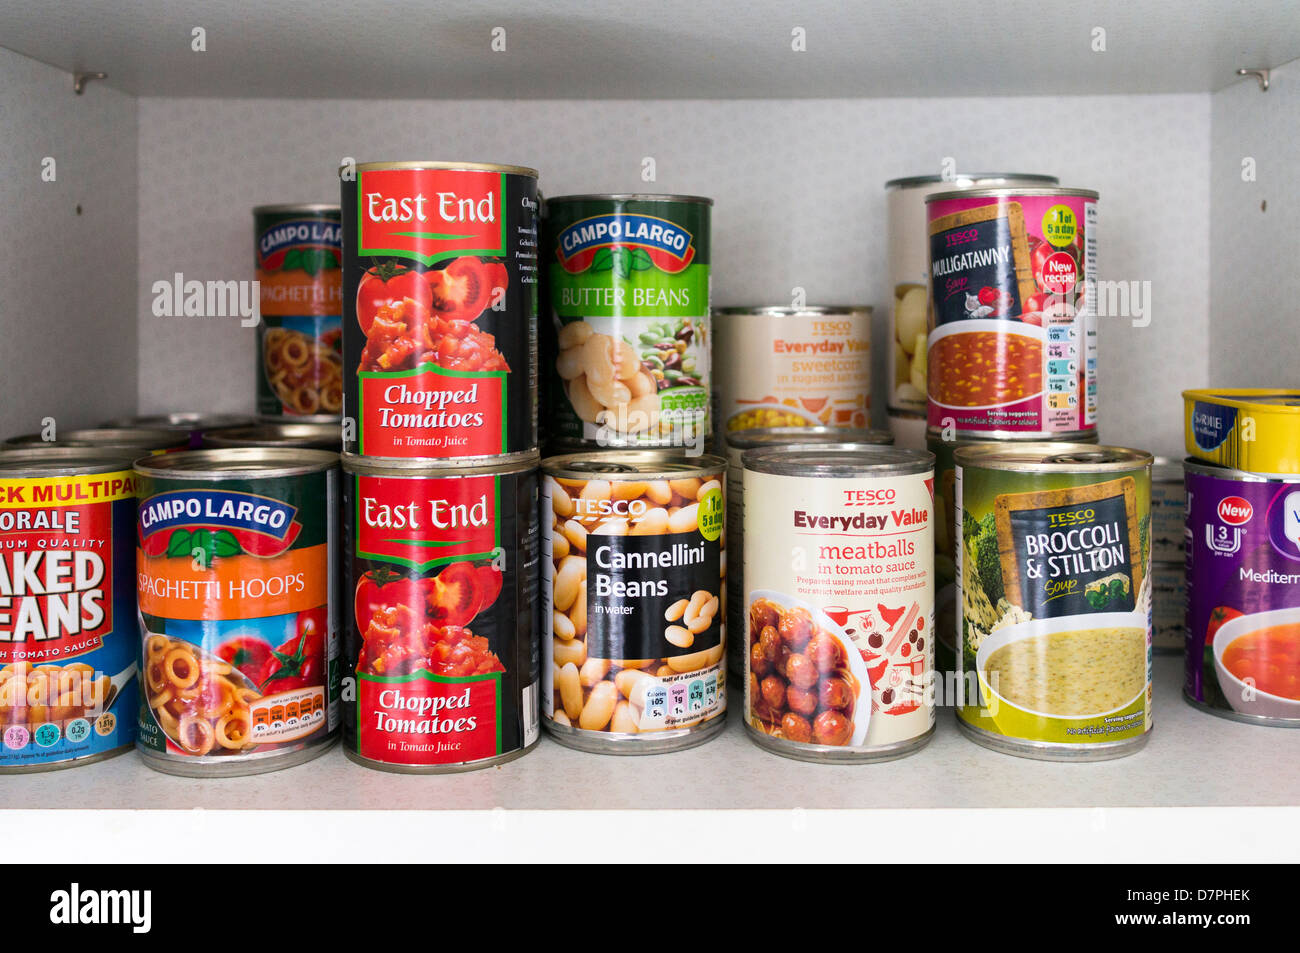 Food cans and tins on the shelf of a store cupboard - Stock Image